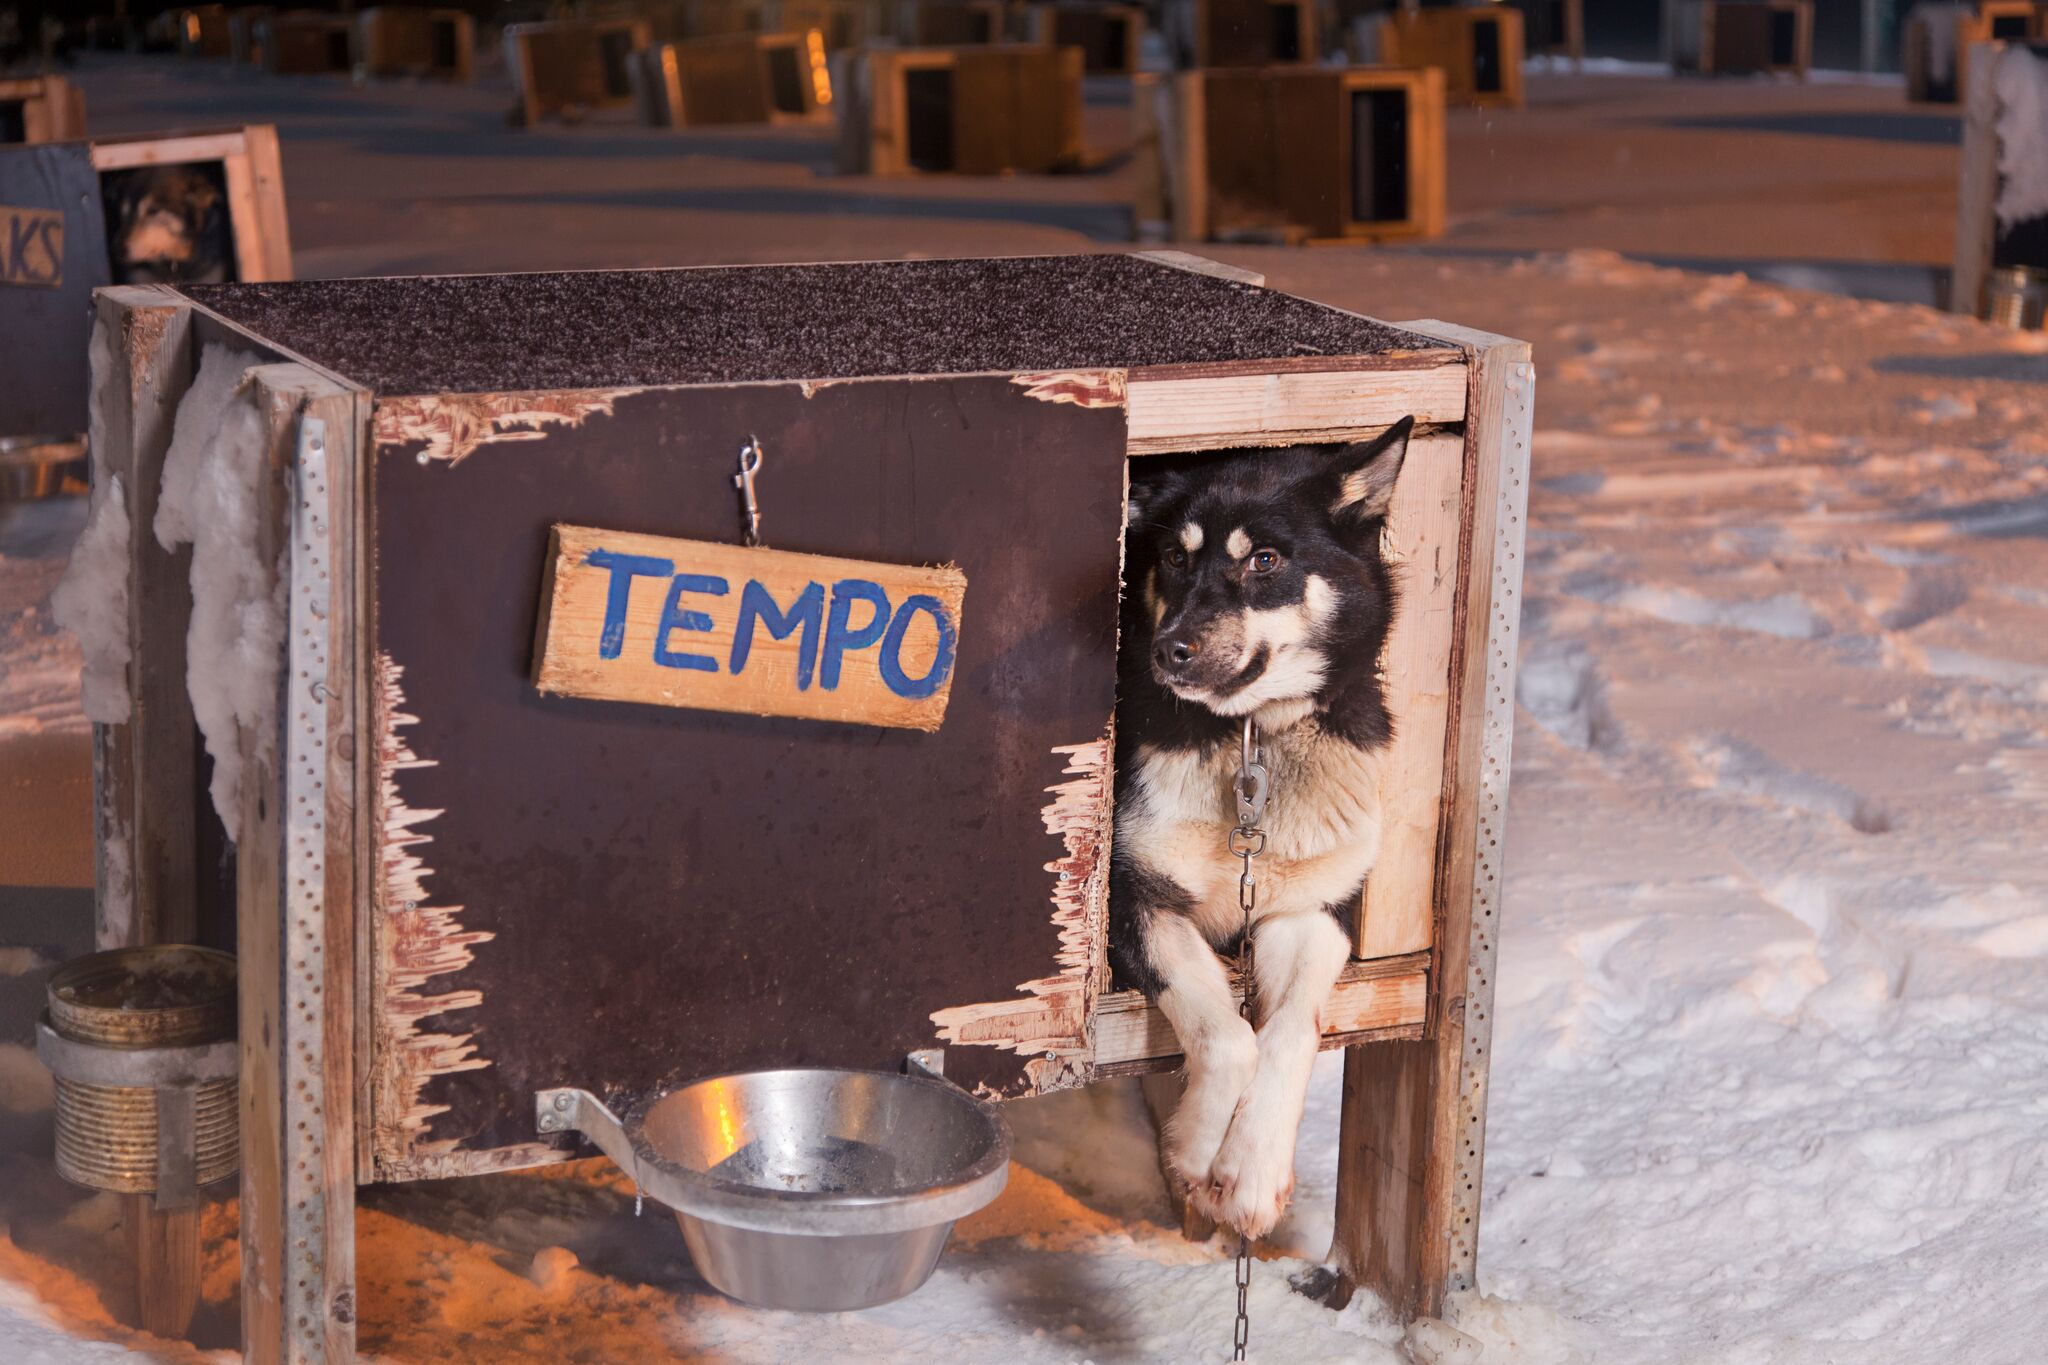 Dog Sledding in the Arctic - The dogs are loved and very well looked after